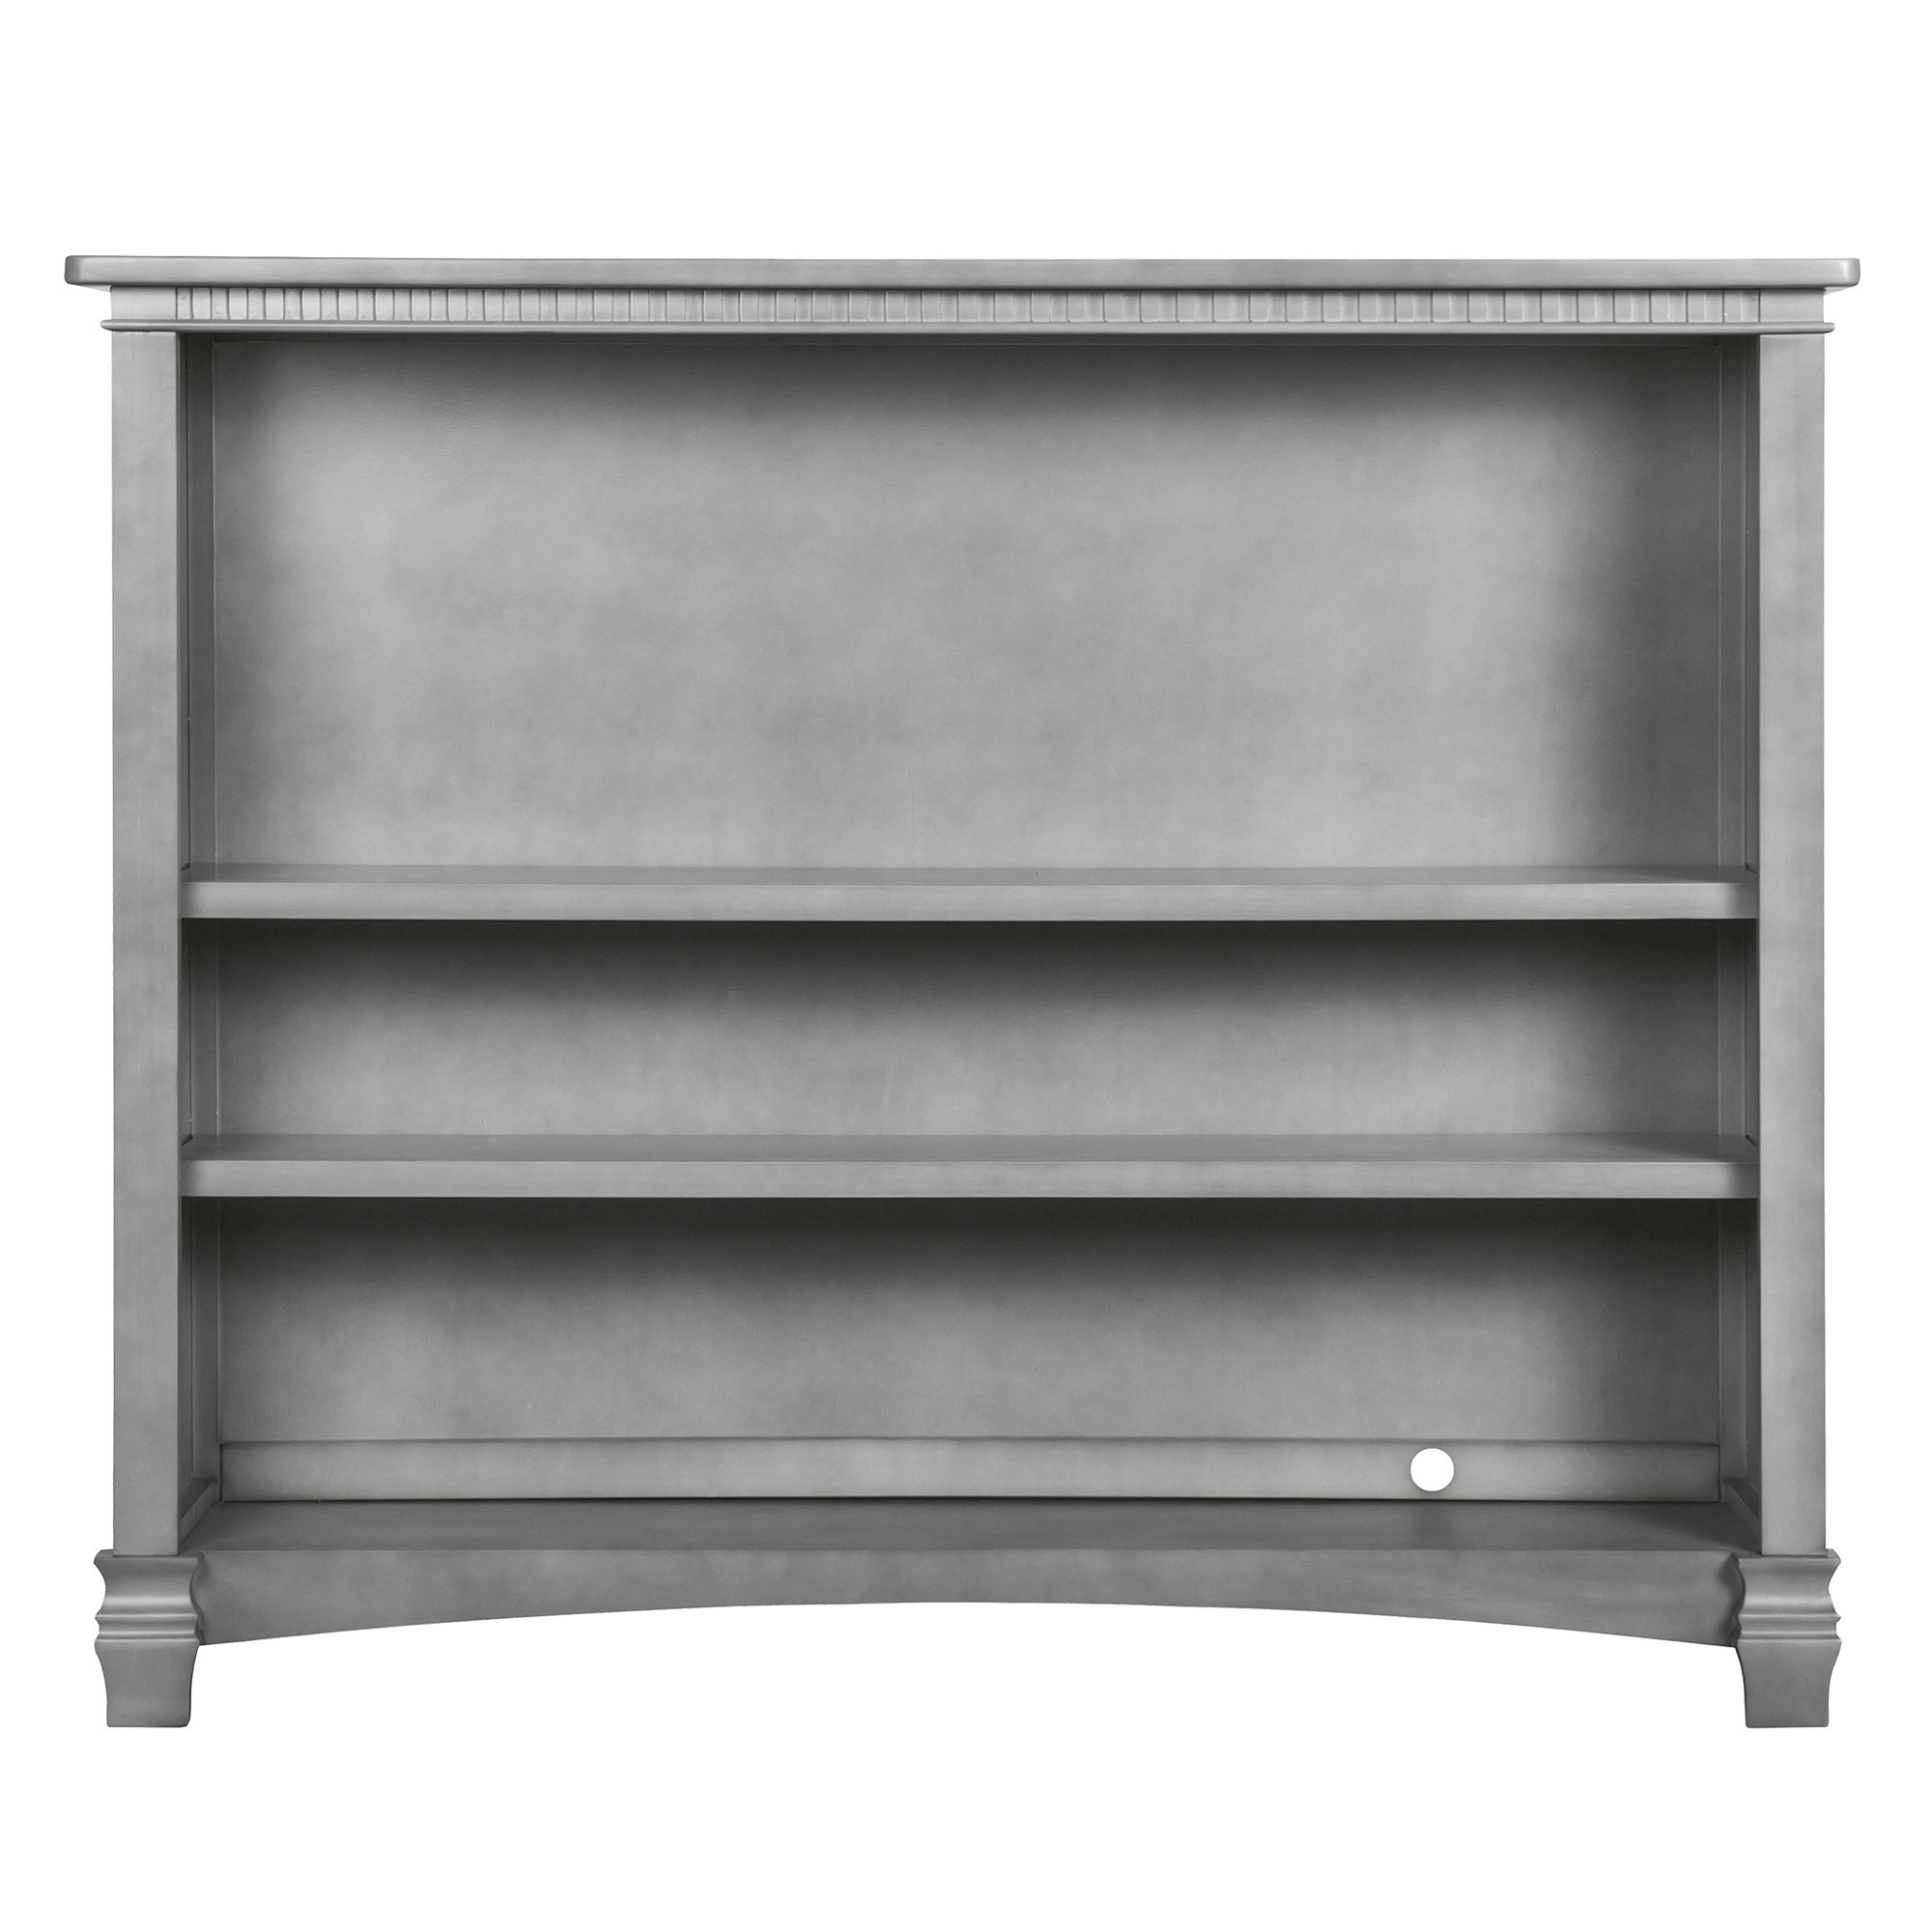 Evolur Santa Fe Hutch, Storm Grey